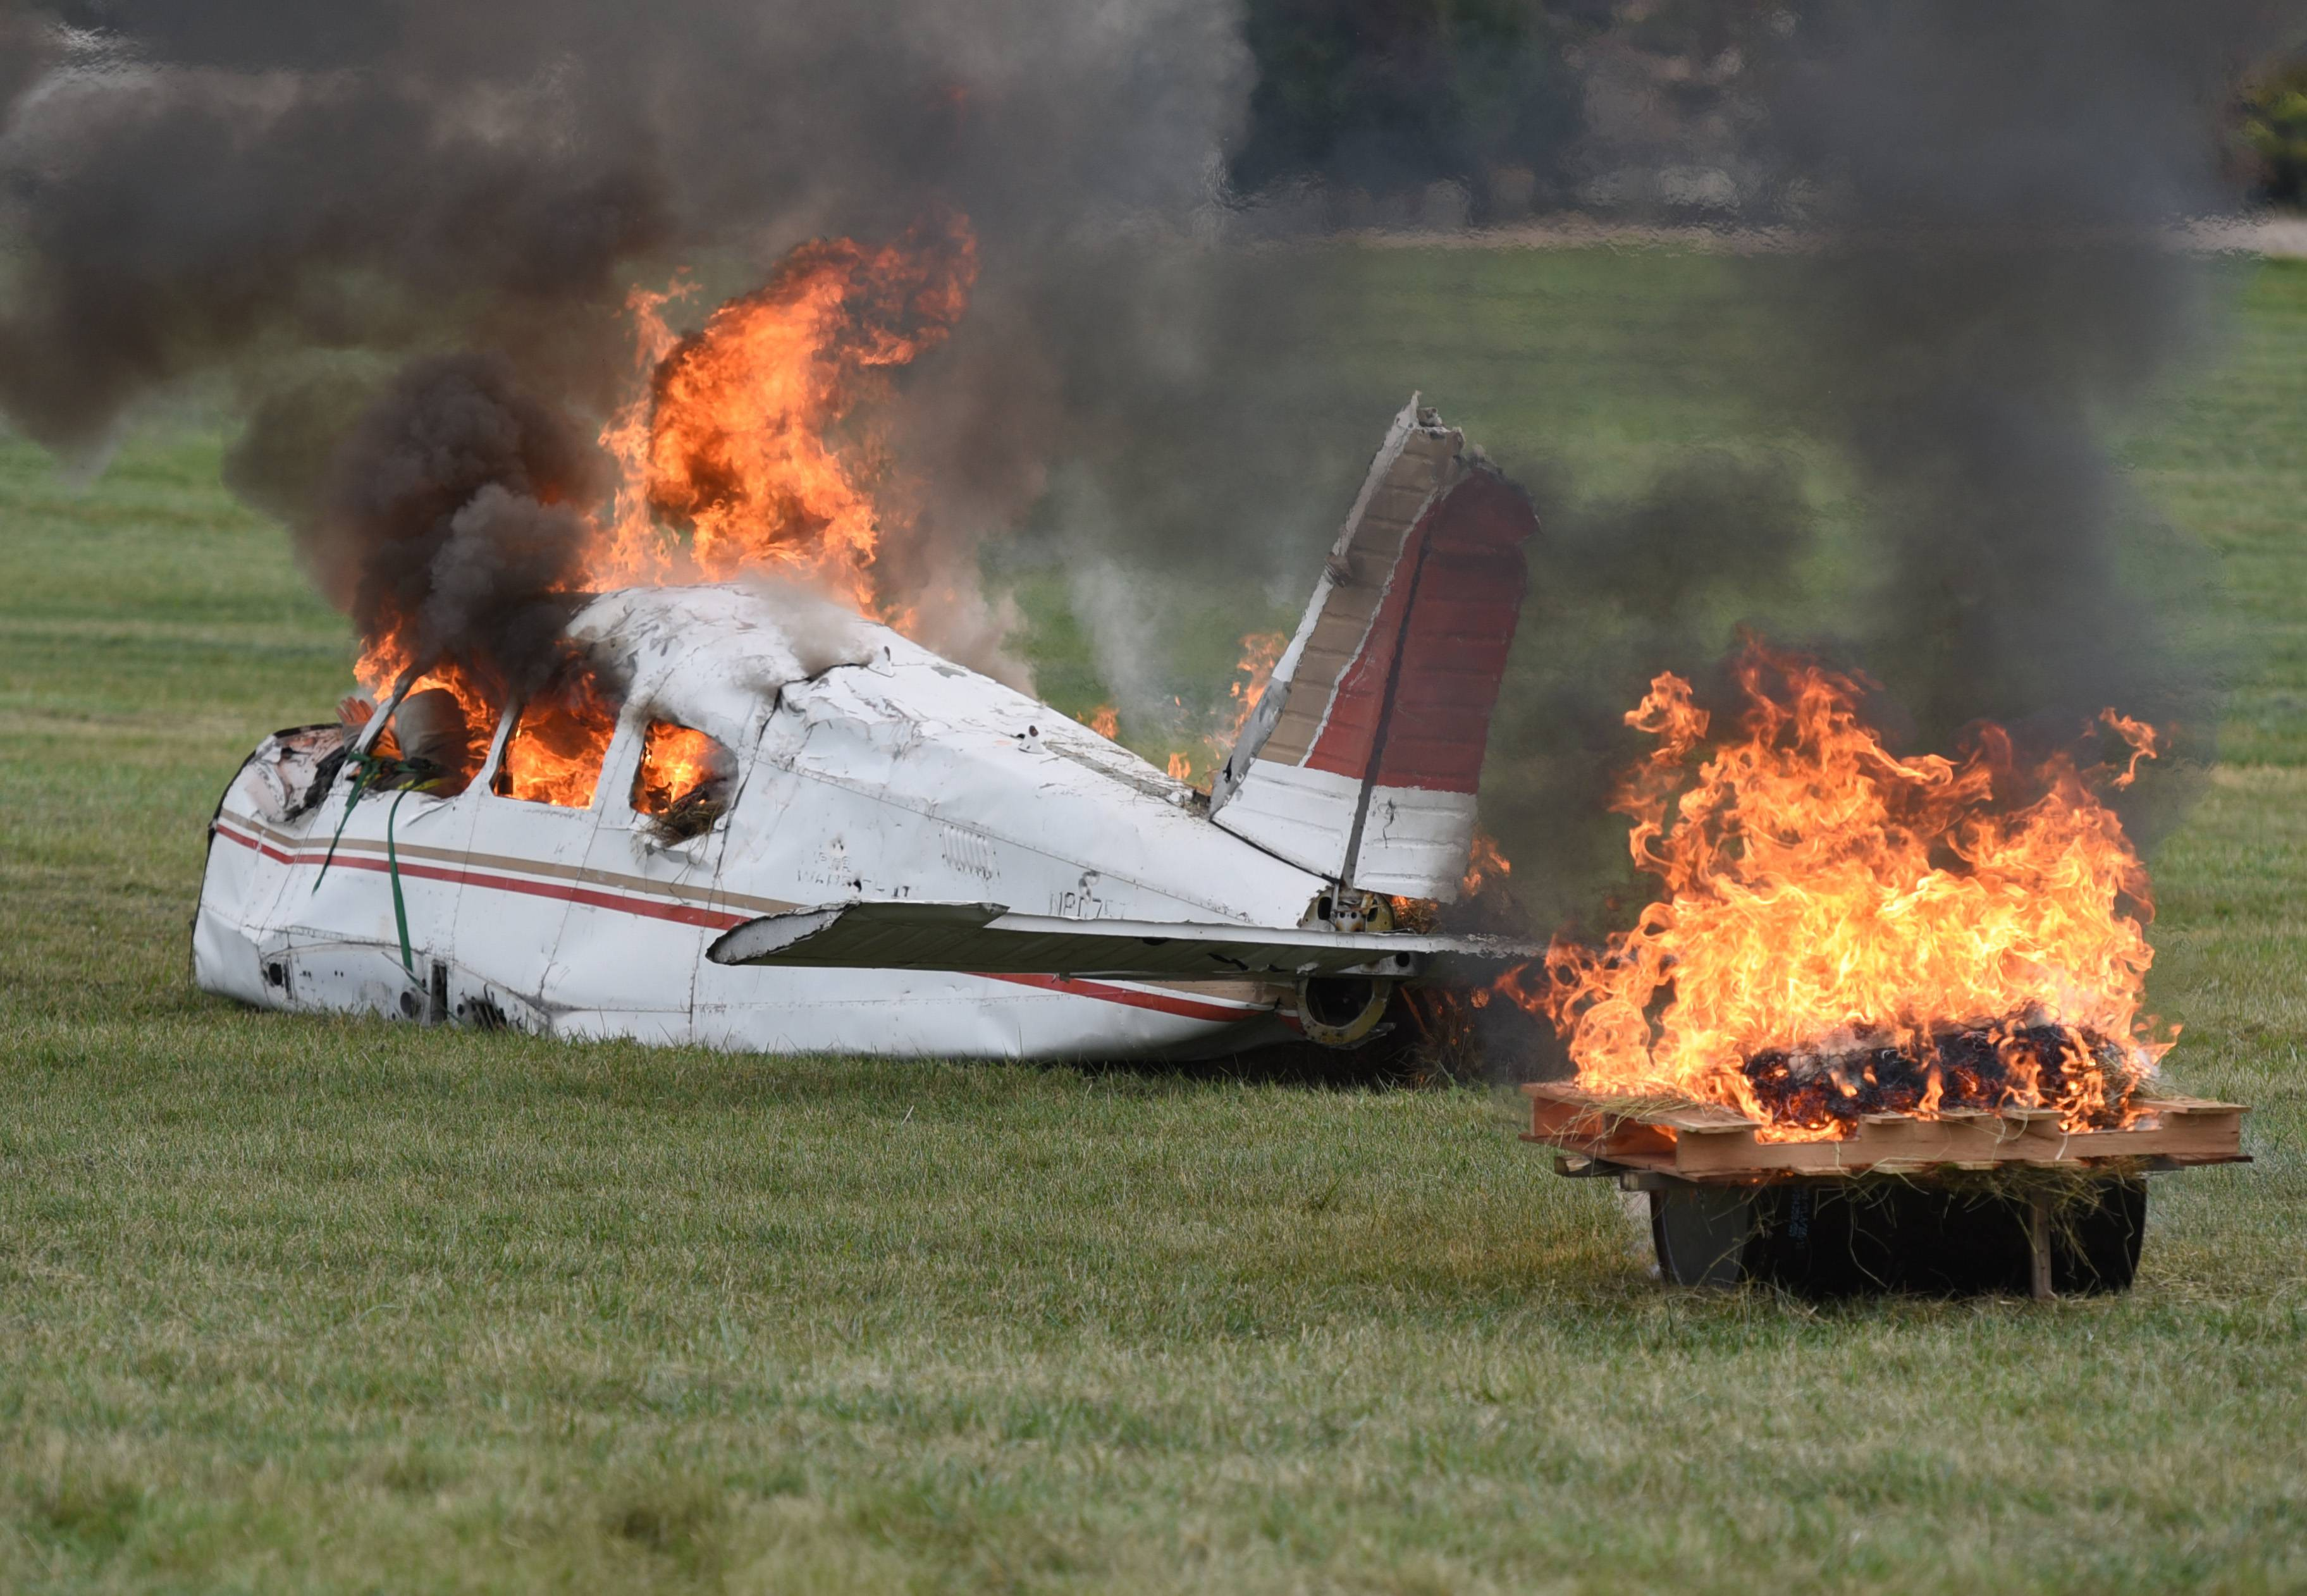 Part of a small plane served as the cockpit Saturday during a mock plane crash at DuPage Airport in West Chicago.